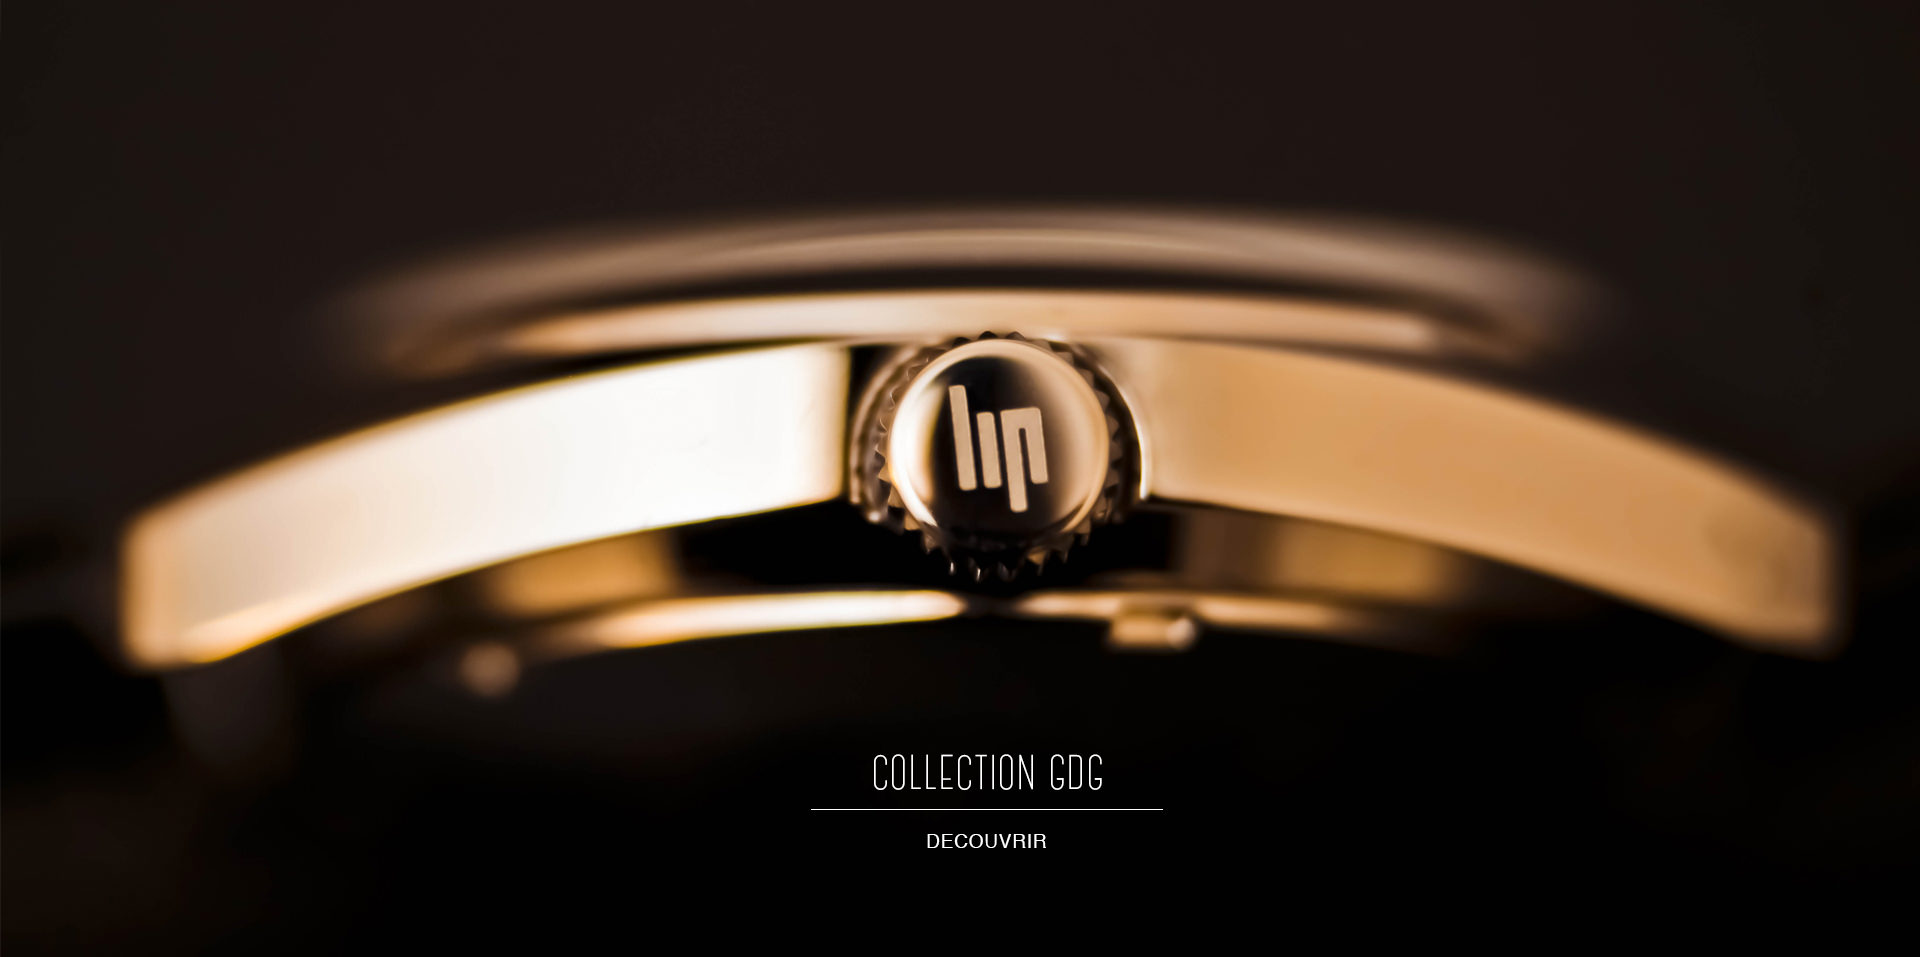 Collection GDG